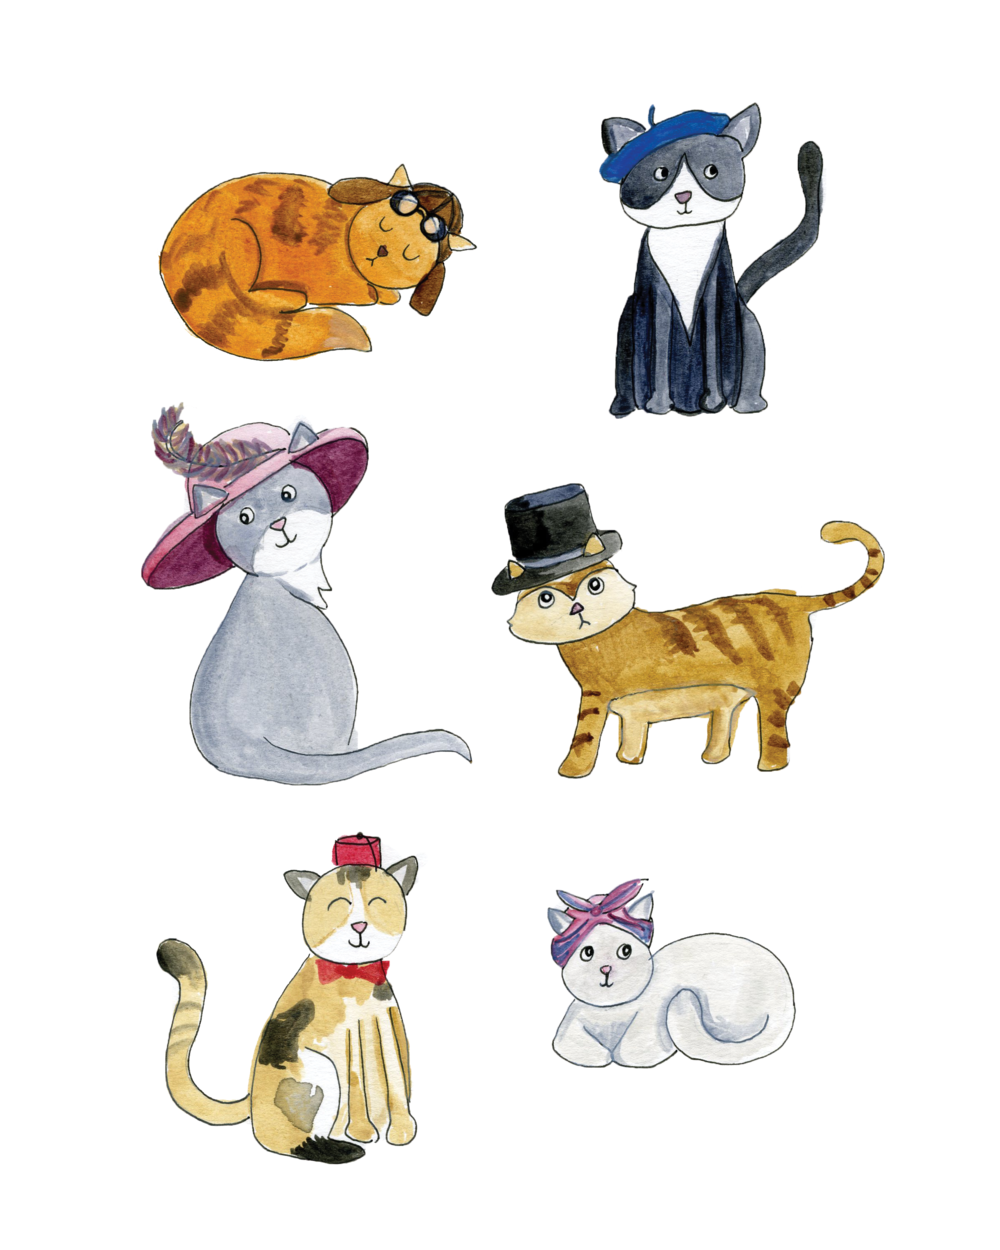 cats-in-hats-illustration